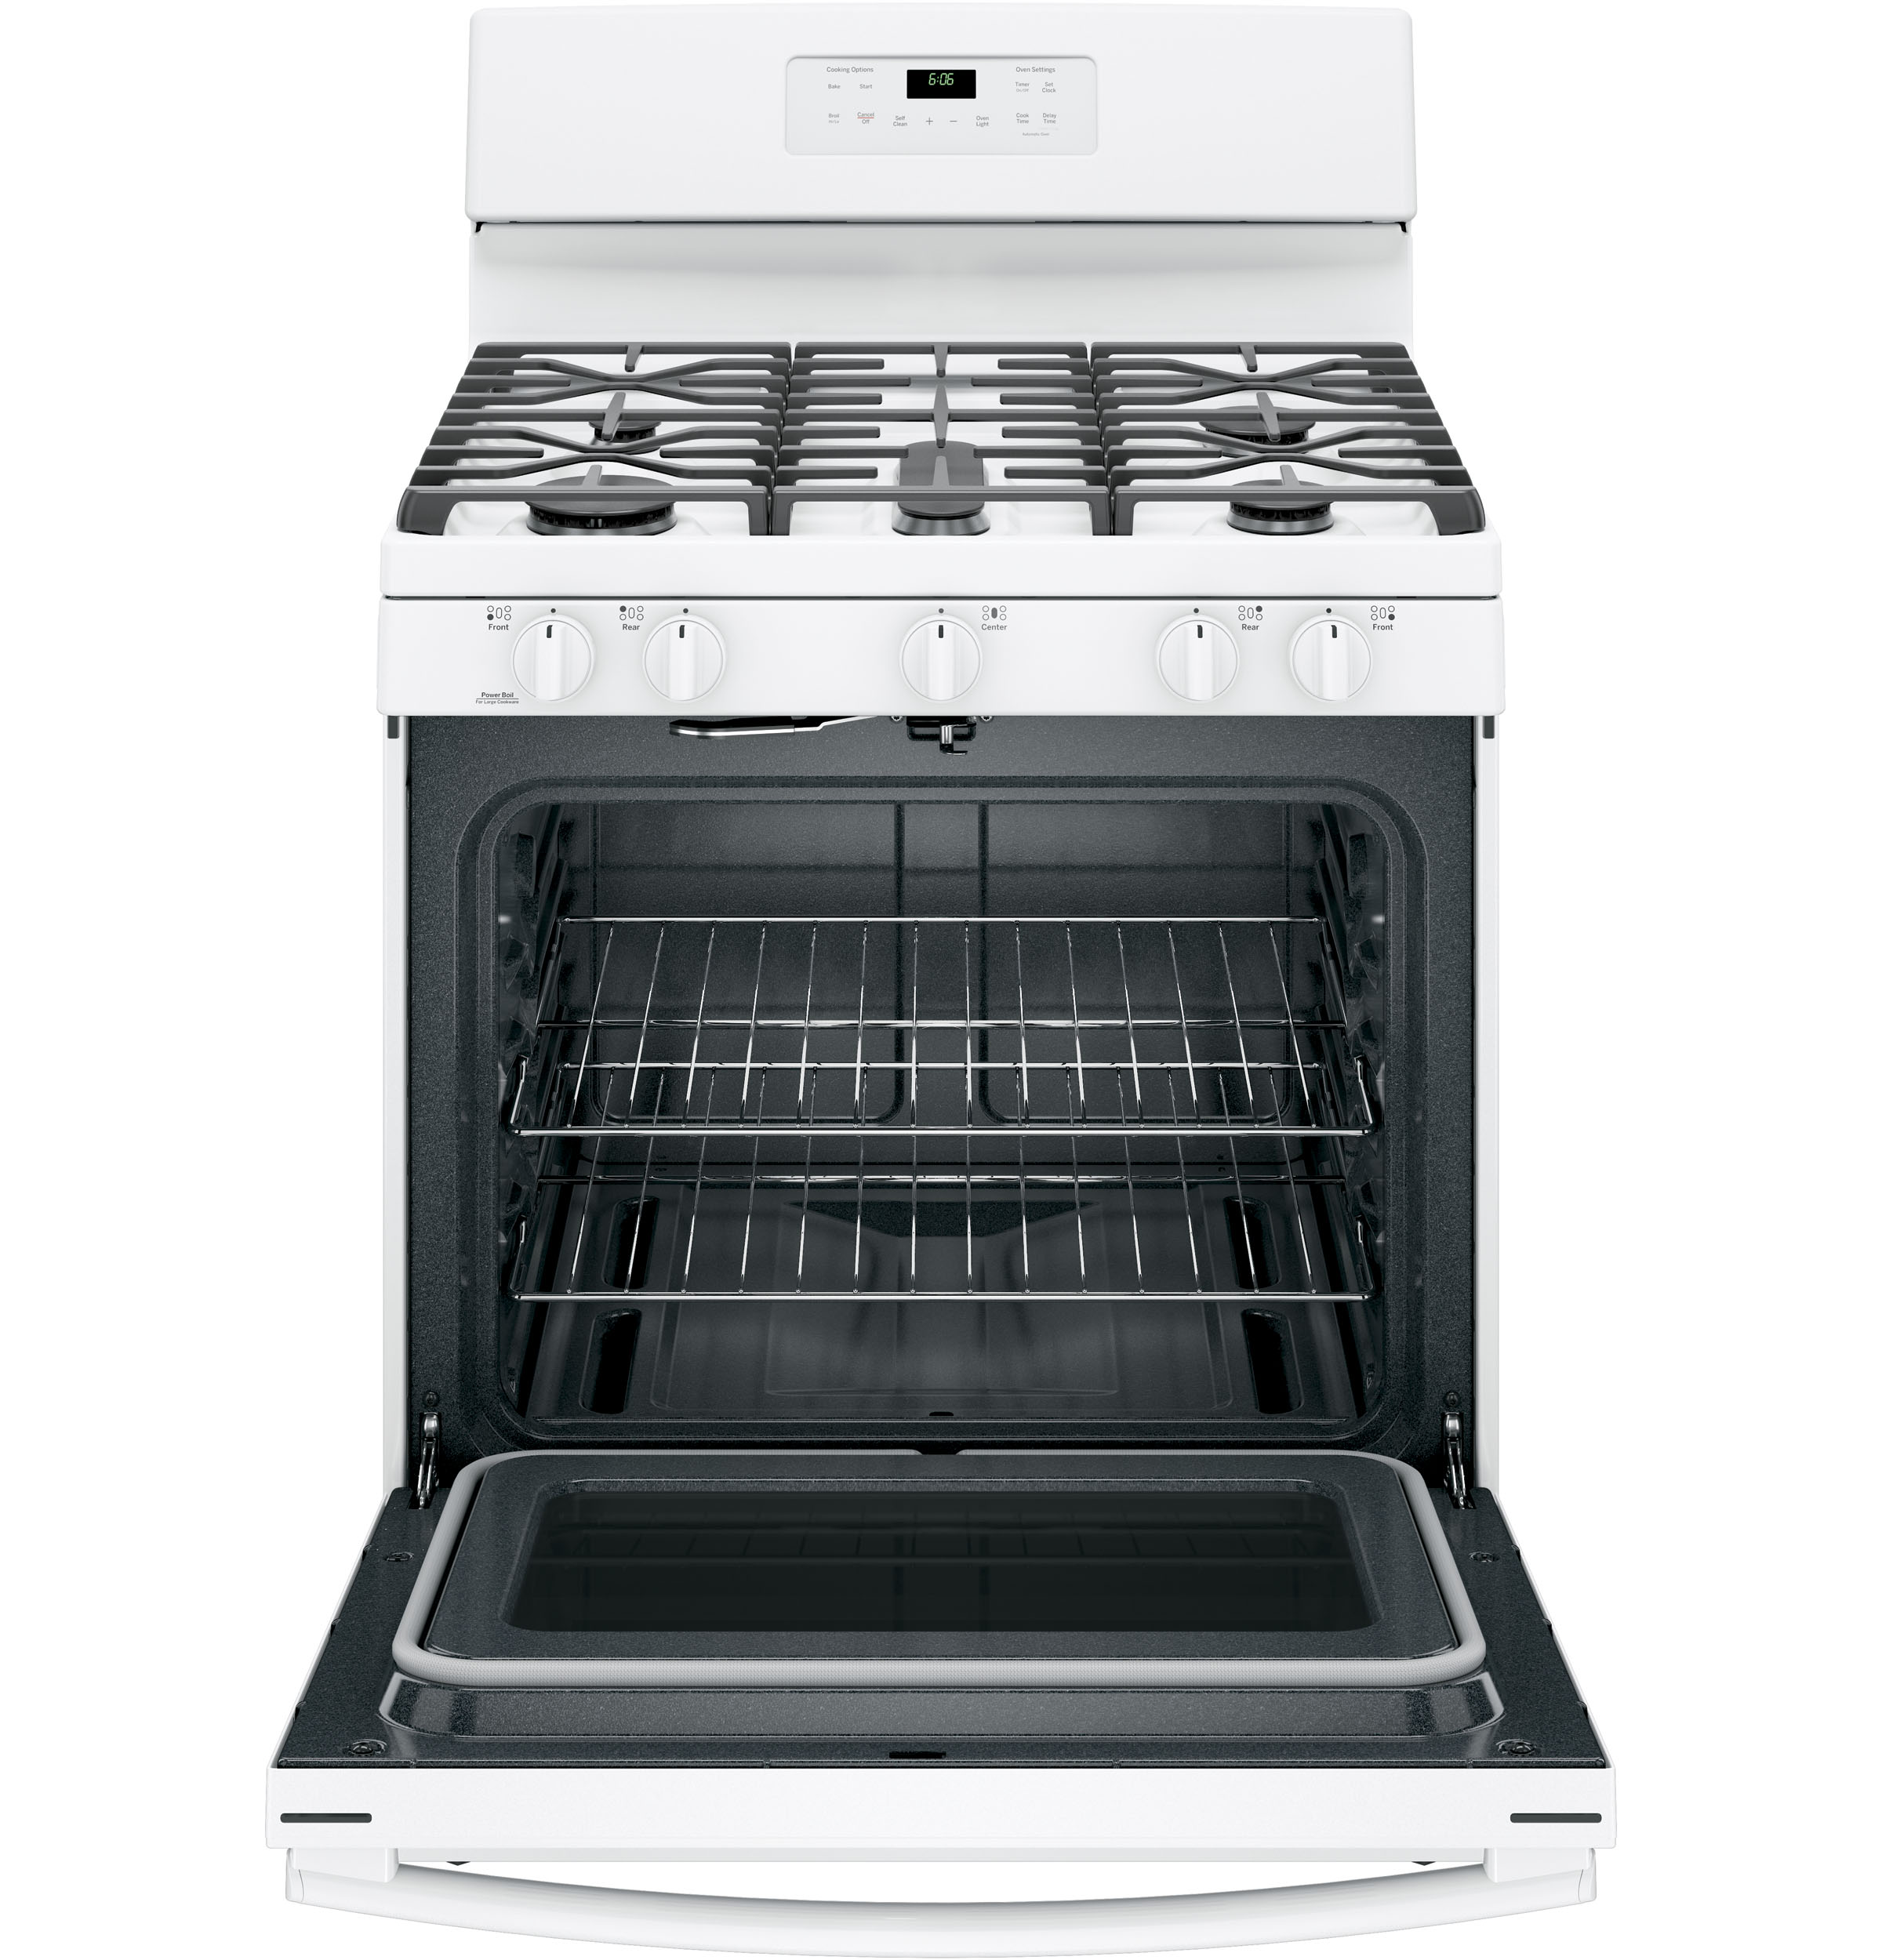 GE Appliances JGB660DEJWW 5.0 cu .ft. Freestanding Gas Range - White